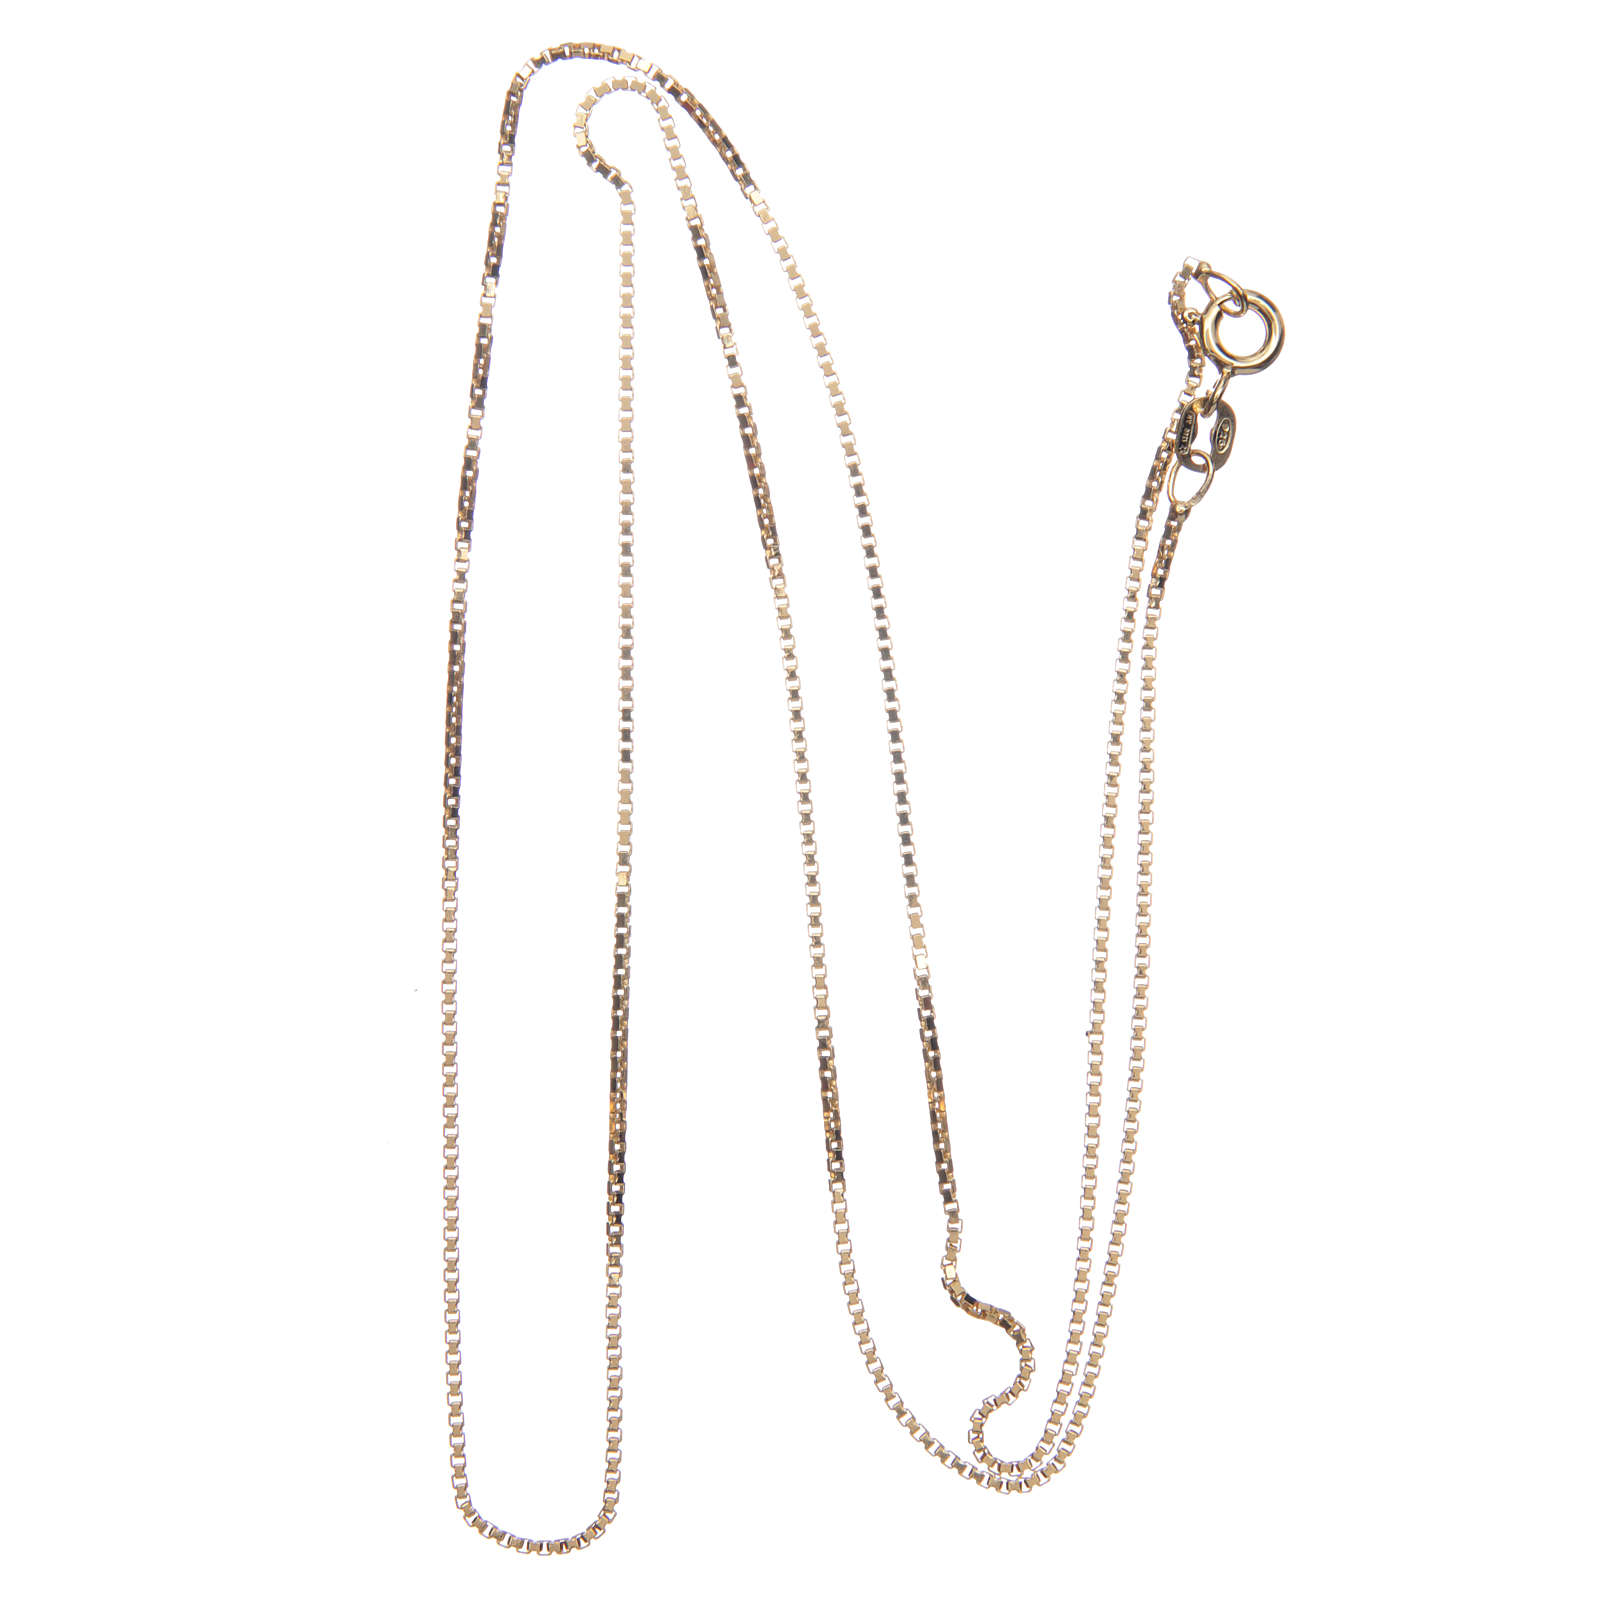 Venetian chain in 925 sterling silver finished in gold, 60 cm length 4